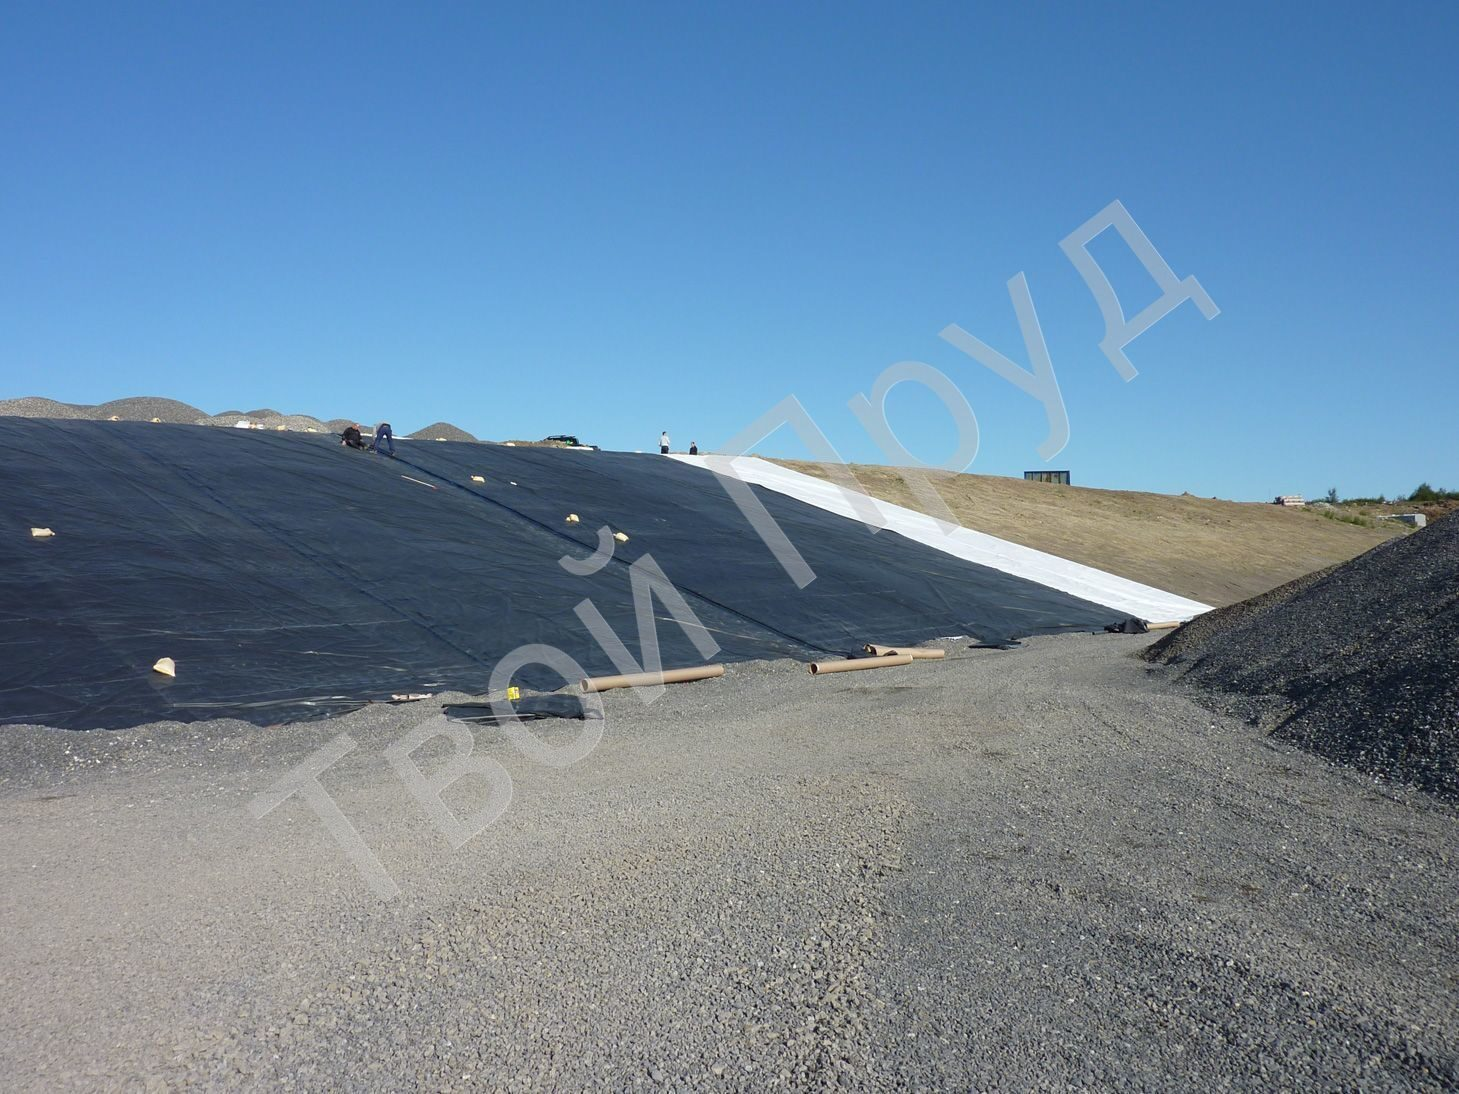 epdm-geo-projects-landfill-covers-sweden-skeleftea-p1000622-180dpi